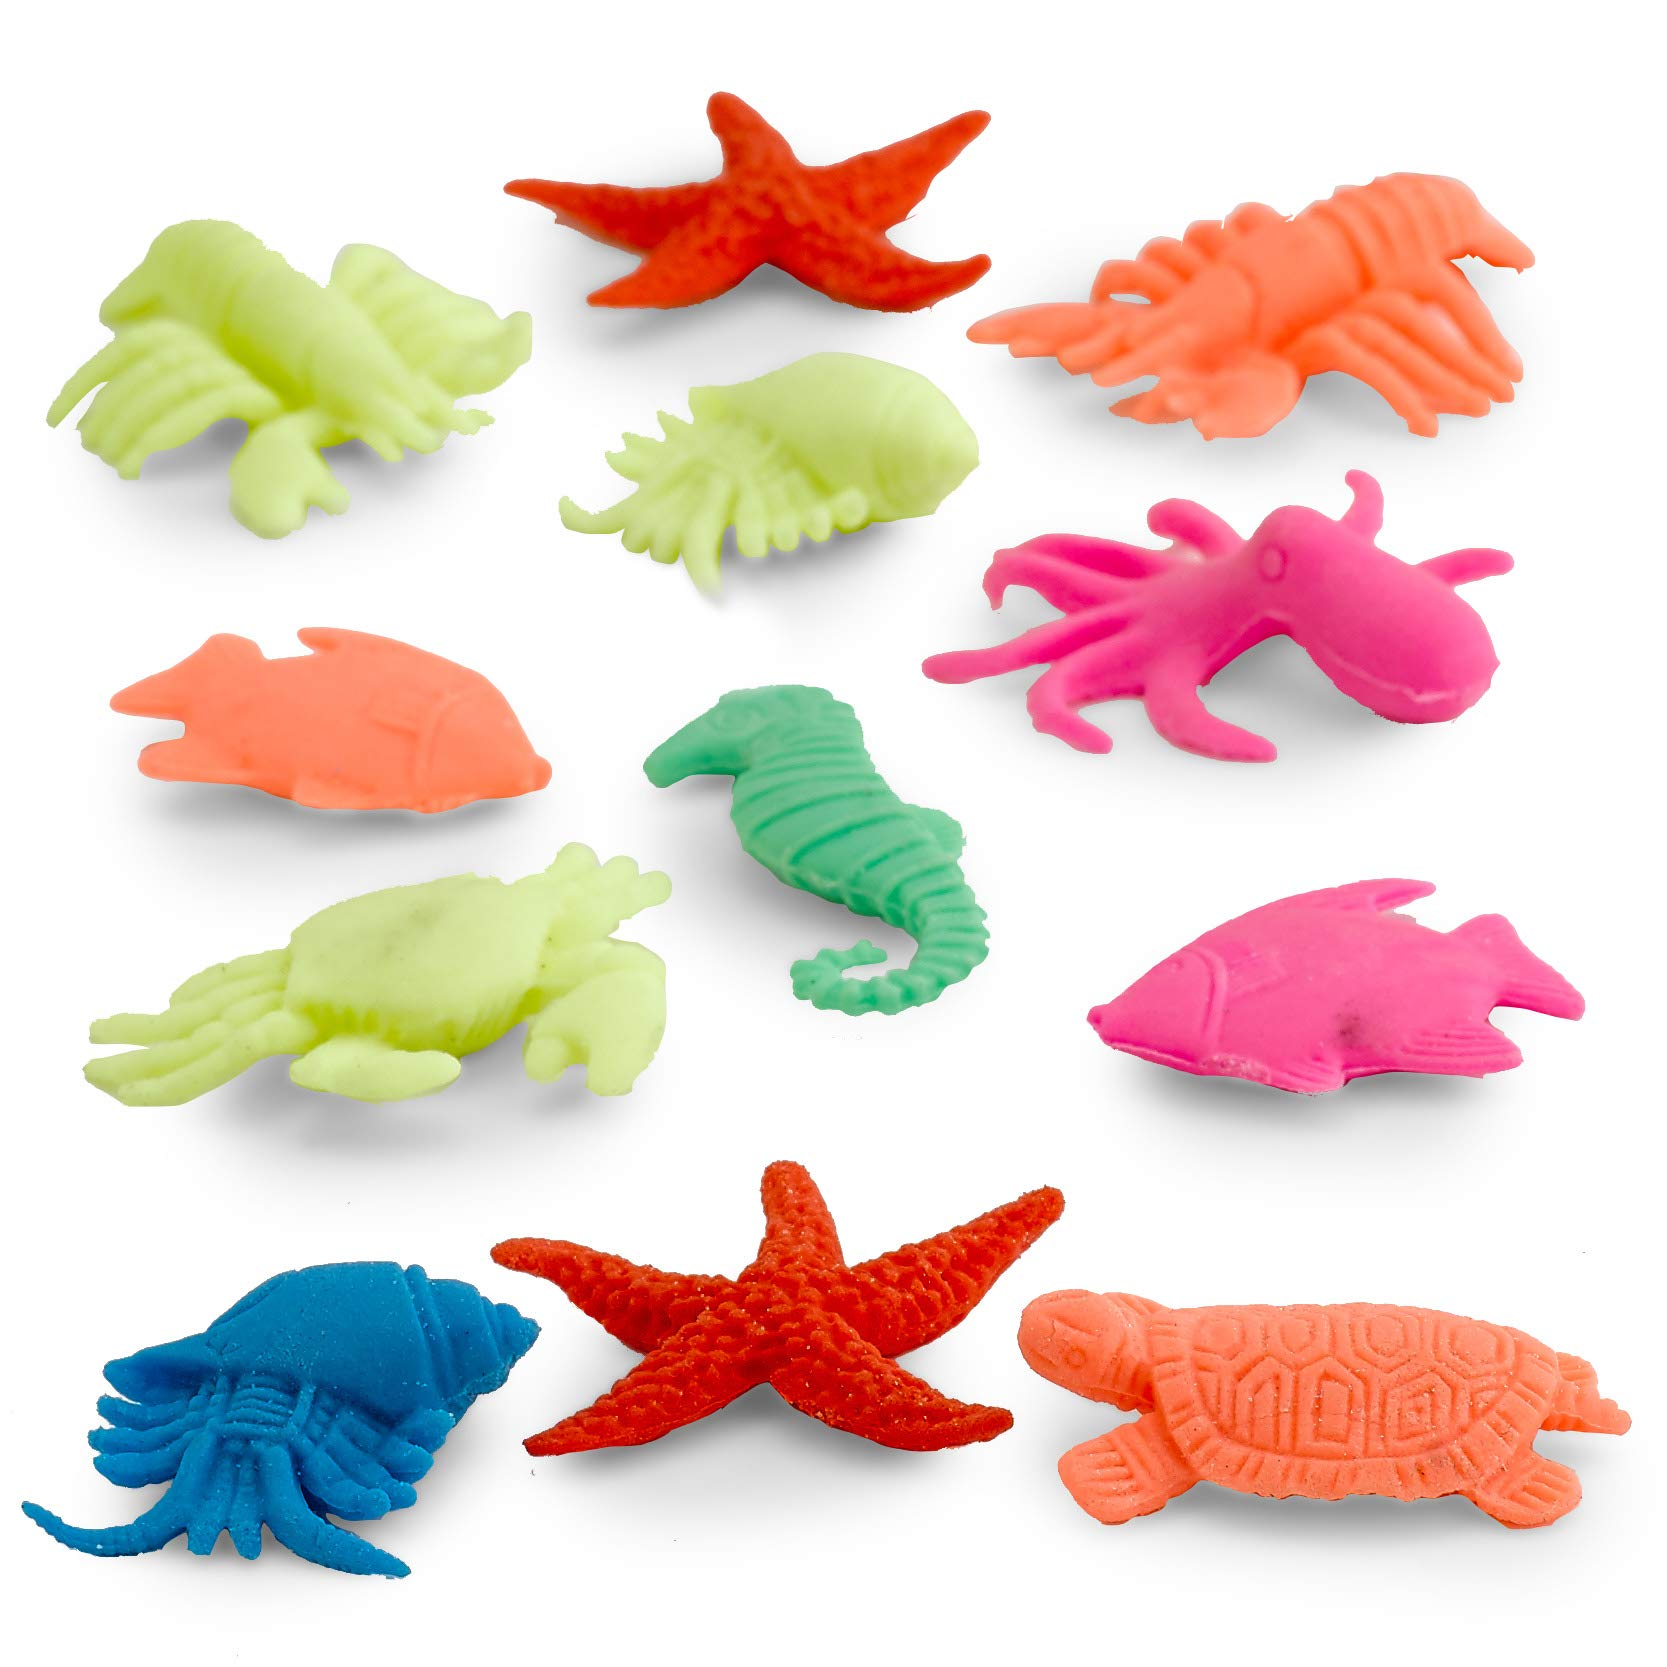 Kidsco Growing Animals Sea Life - Pack of 12 Creatures Figures, 1.25'' to 2'', Assorted Colored Animals - Grows Like Magic in Water - Fun Toy for Kids Boys and Girls, Party Favor, Gift, Prize by Kidsco (Image #6)